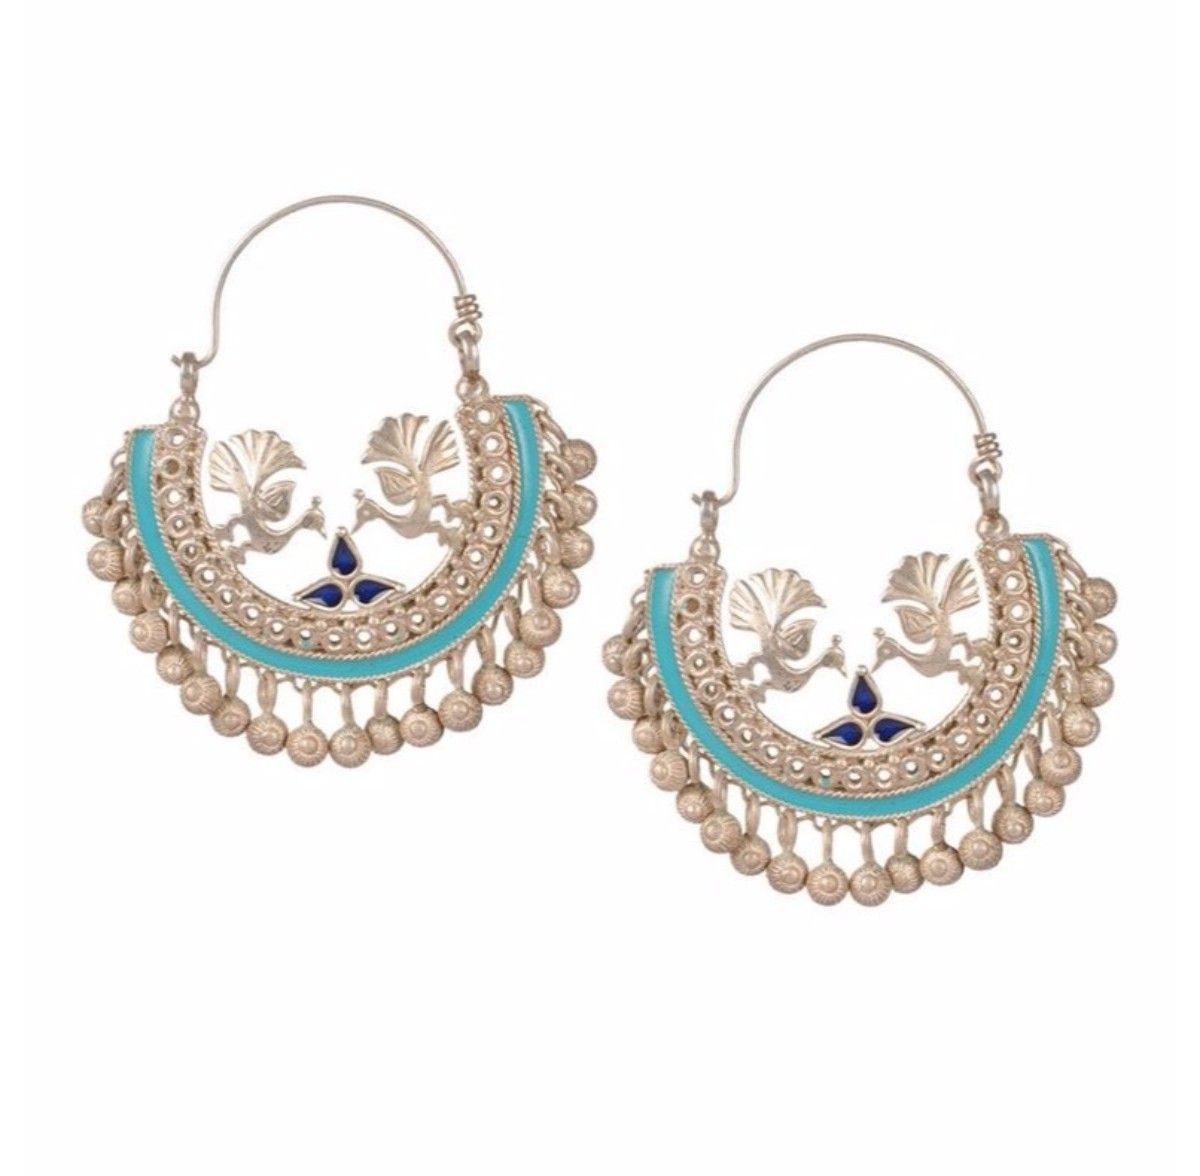 Devi Jaipur Blue Pea Earrings